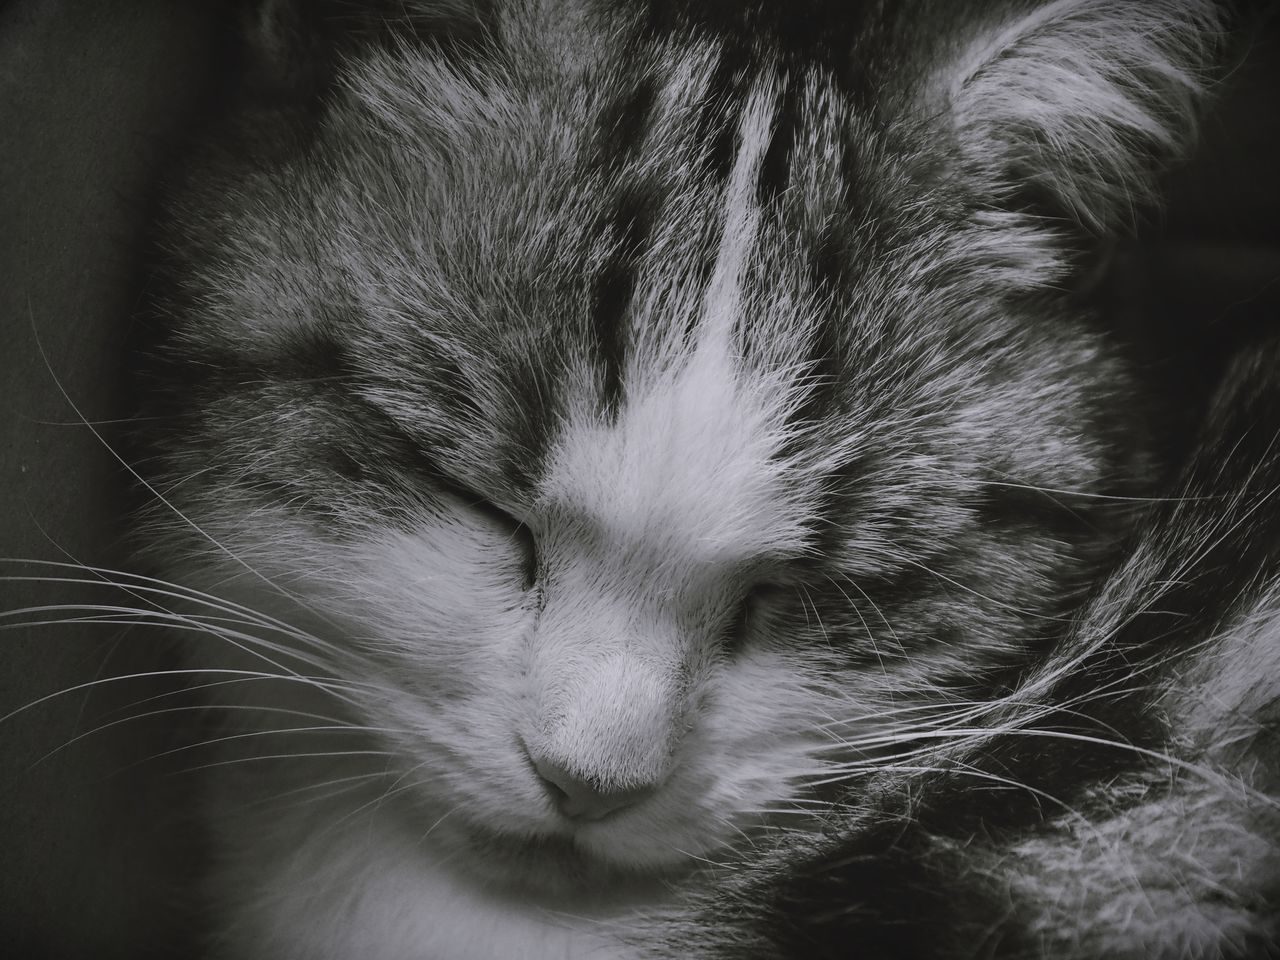 pets, domestic animals, domestic cat, animal themes, mammal, one animal, sleeping, eyes closed, feline, relaxation, cat, whisker, close-up, indoors, no people, day